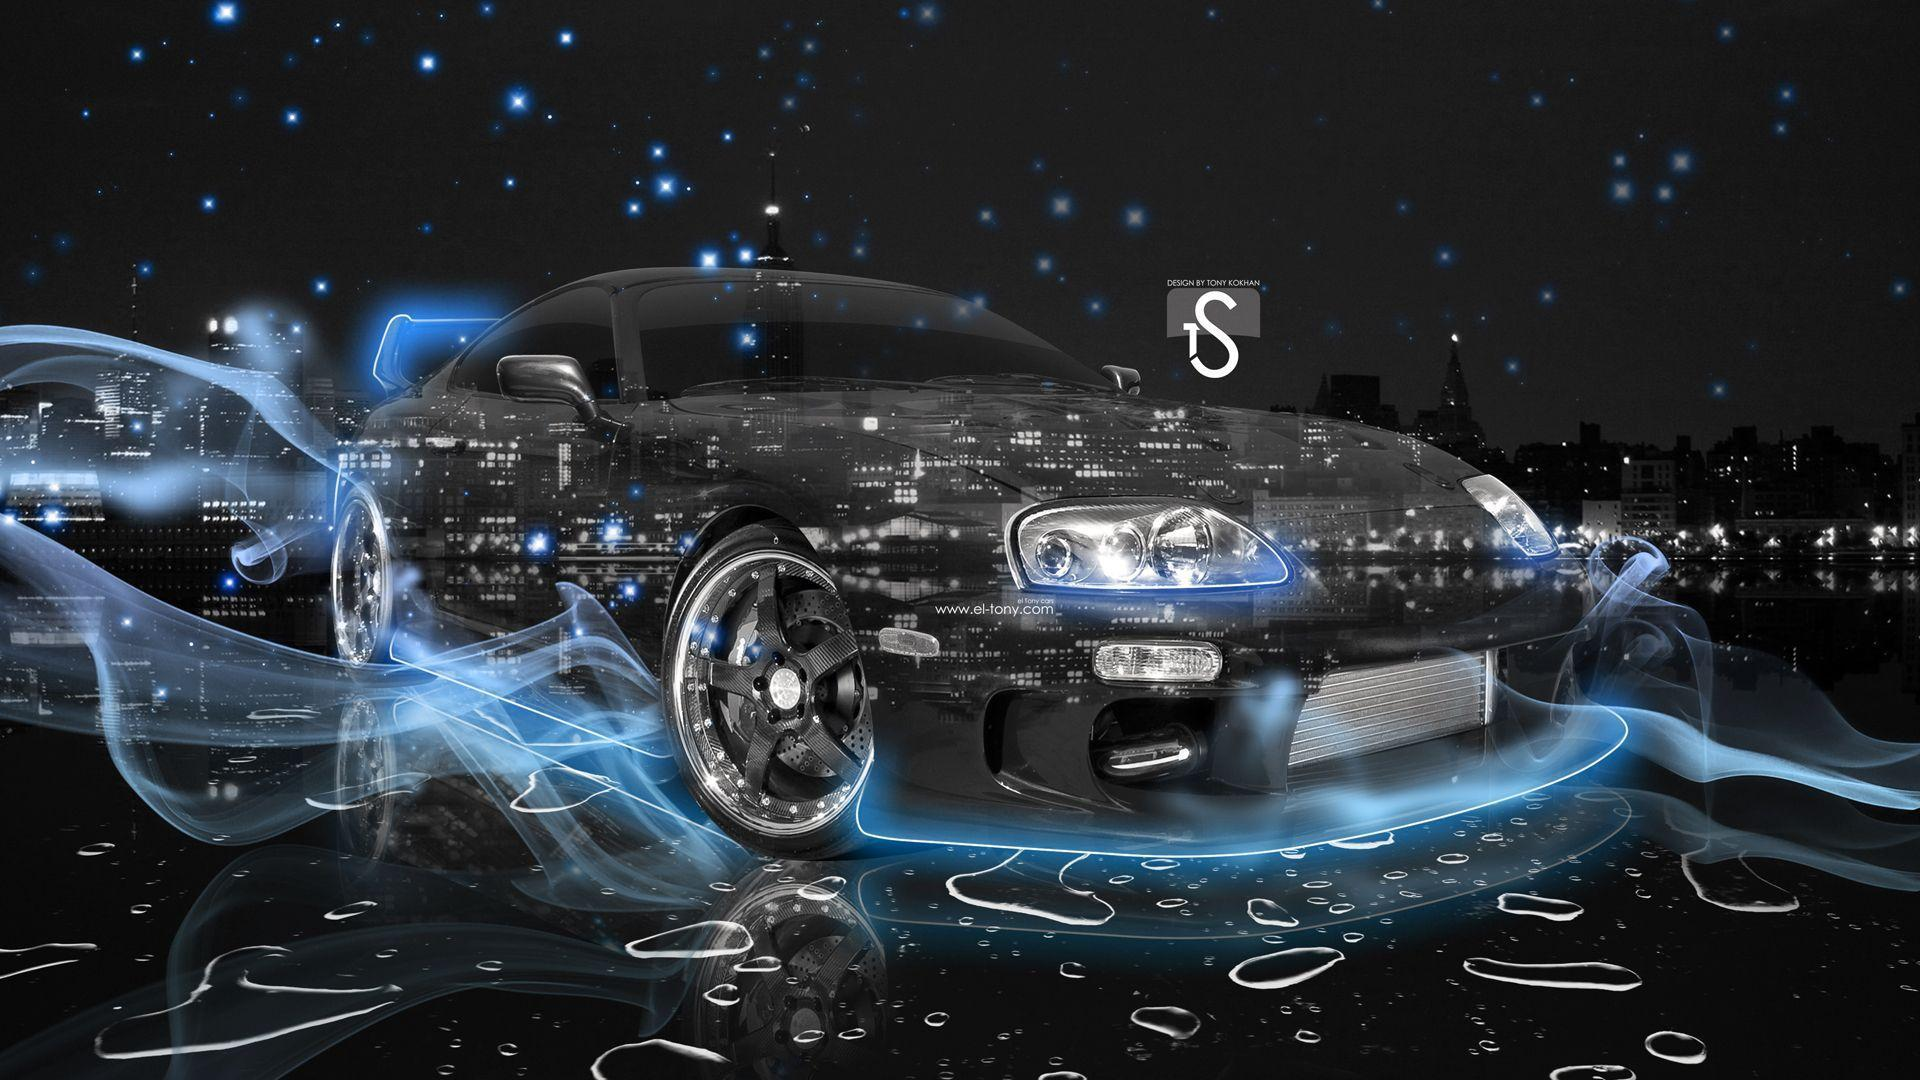 Amazing Car Wallpapers For Desktop Nissa Skyline R34 Gtr Toyota Supra Wallpapers Wallpaper Cave